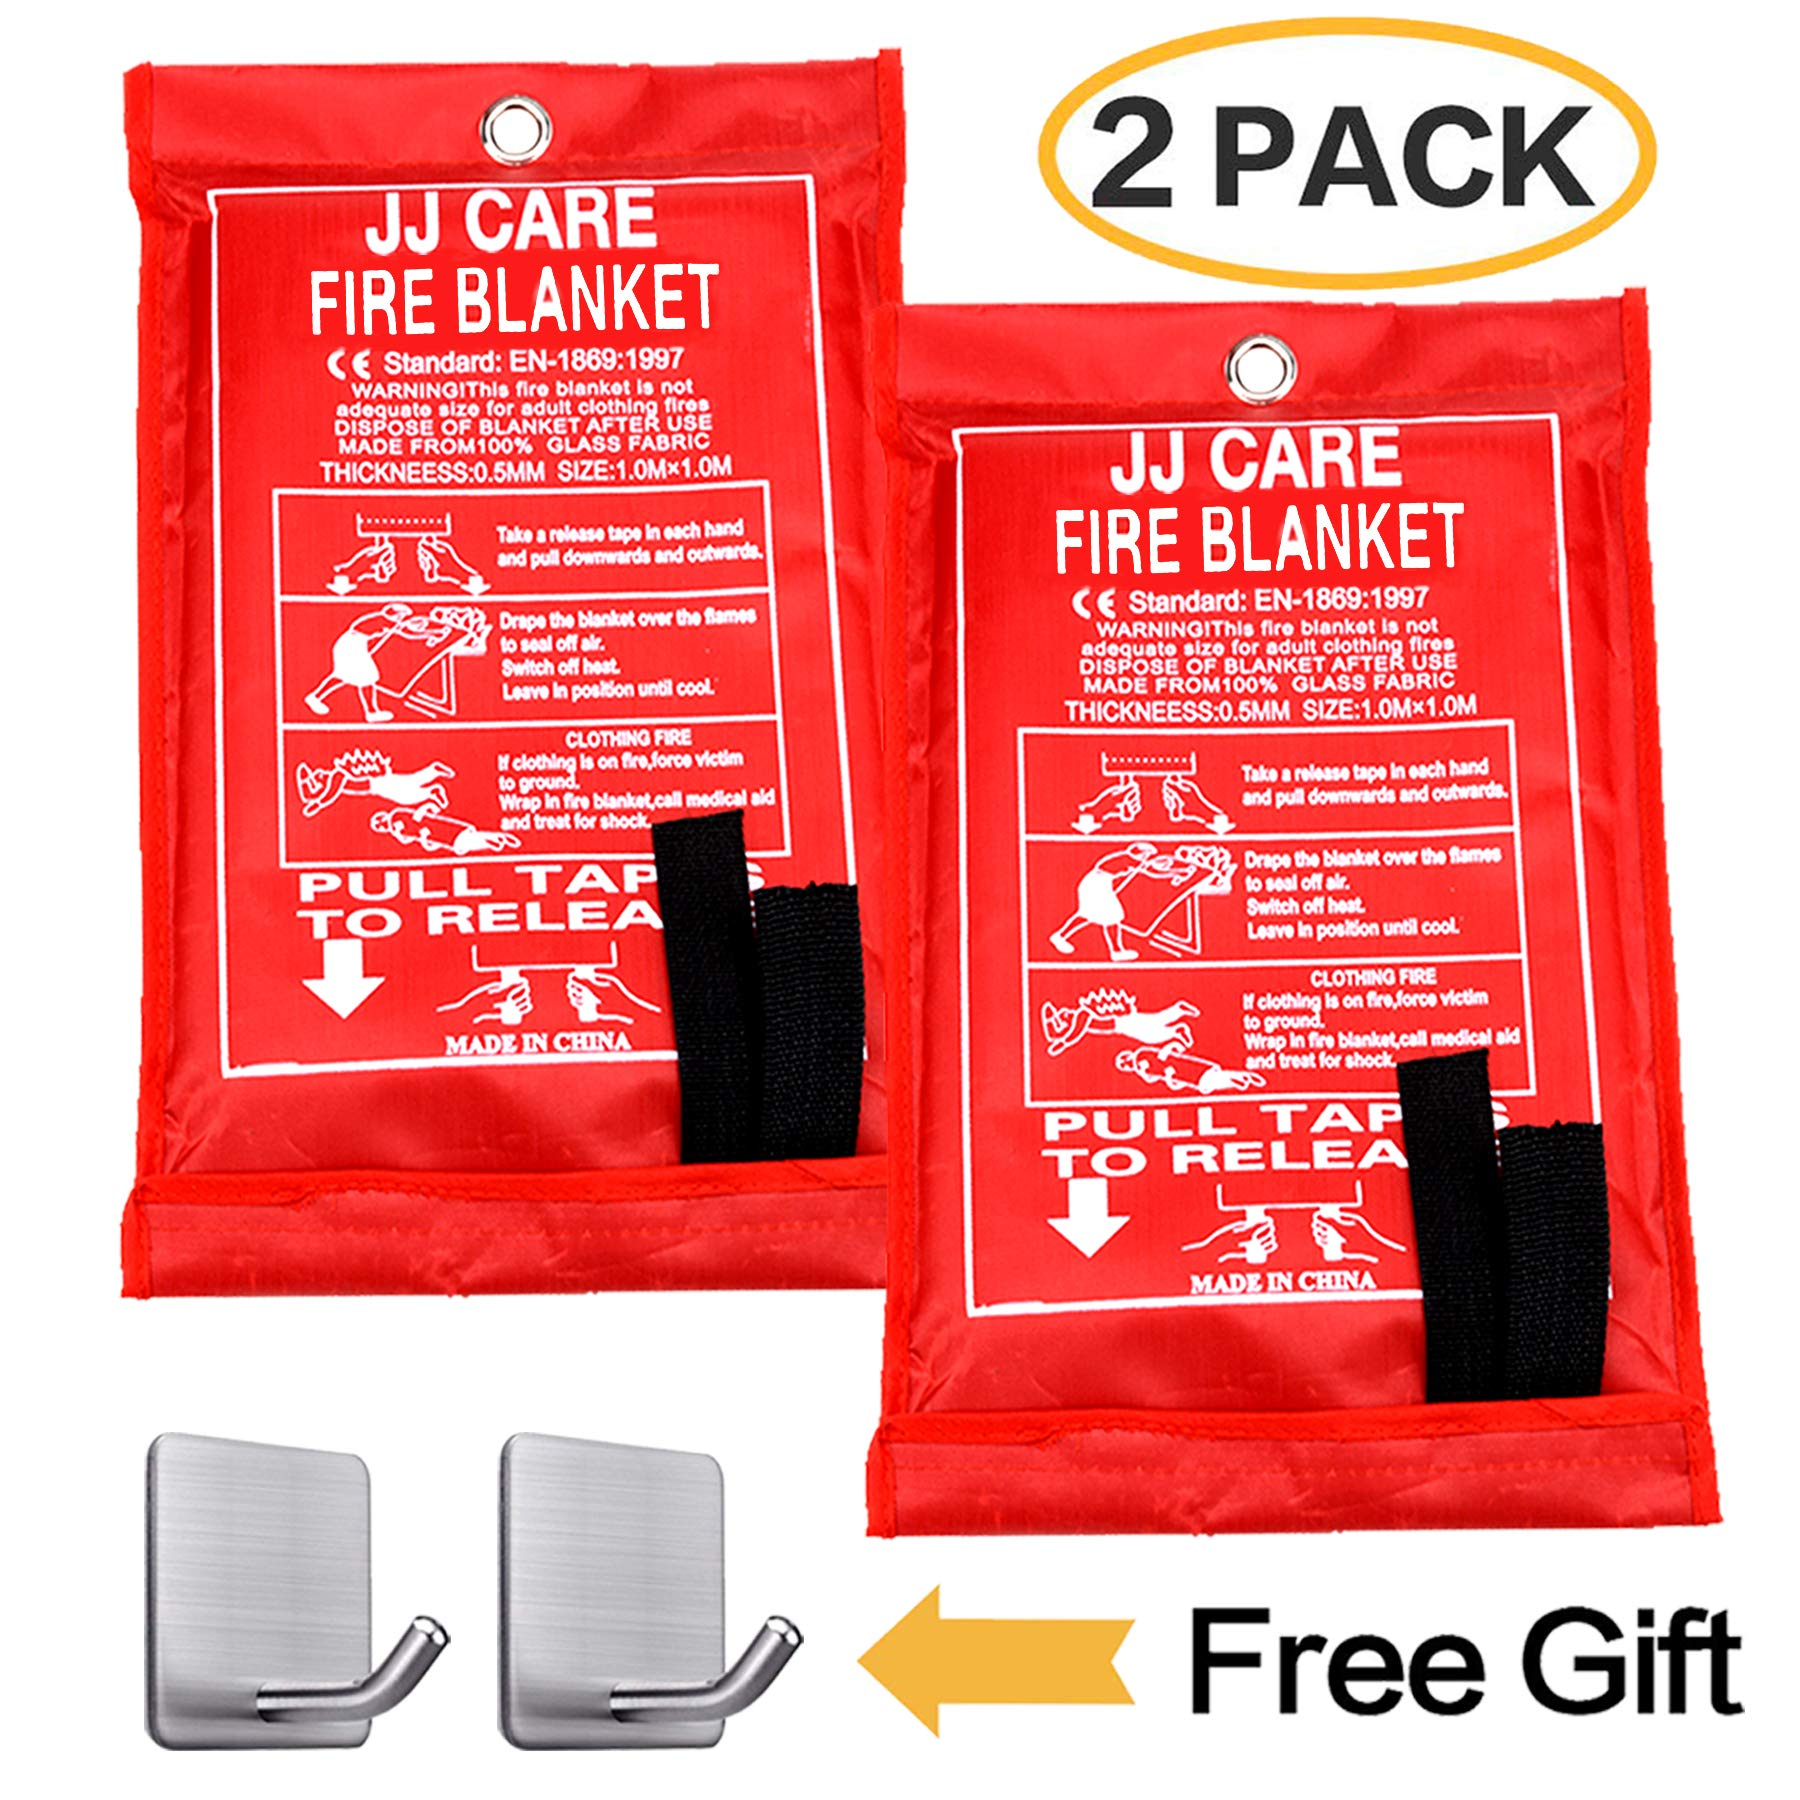 Fire Blanket Emergency Blanket Flame Retardant Blanket Emergency Survival Safety Cover for Kitchen,Fireplace,Car,Office,Warehouse